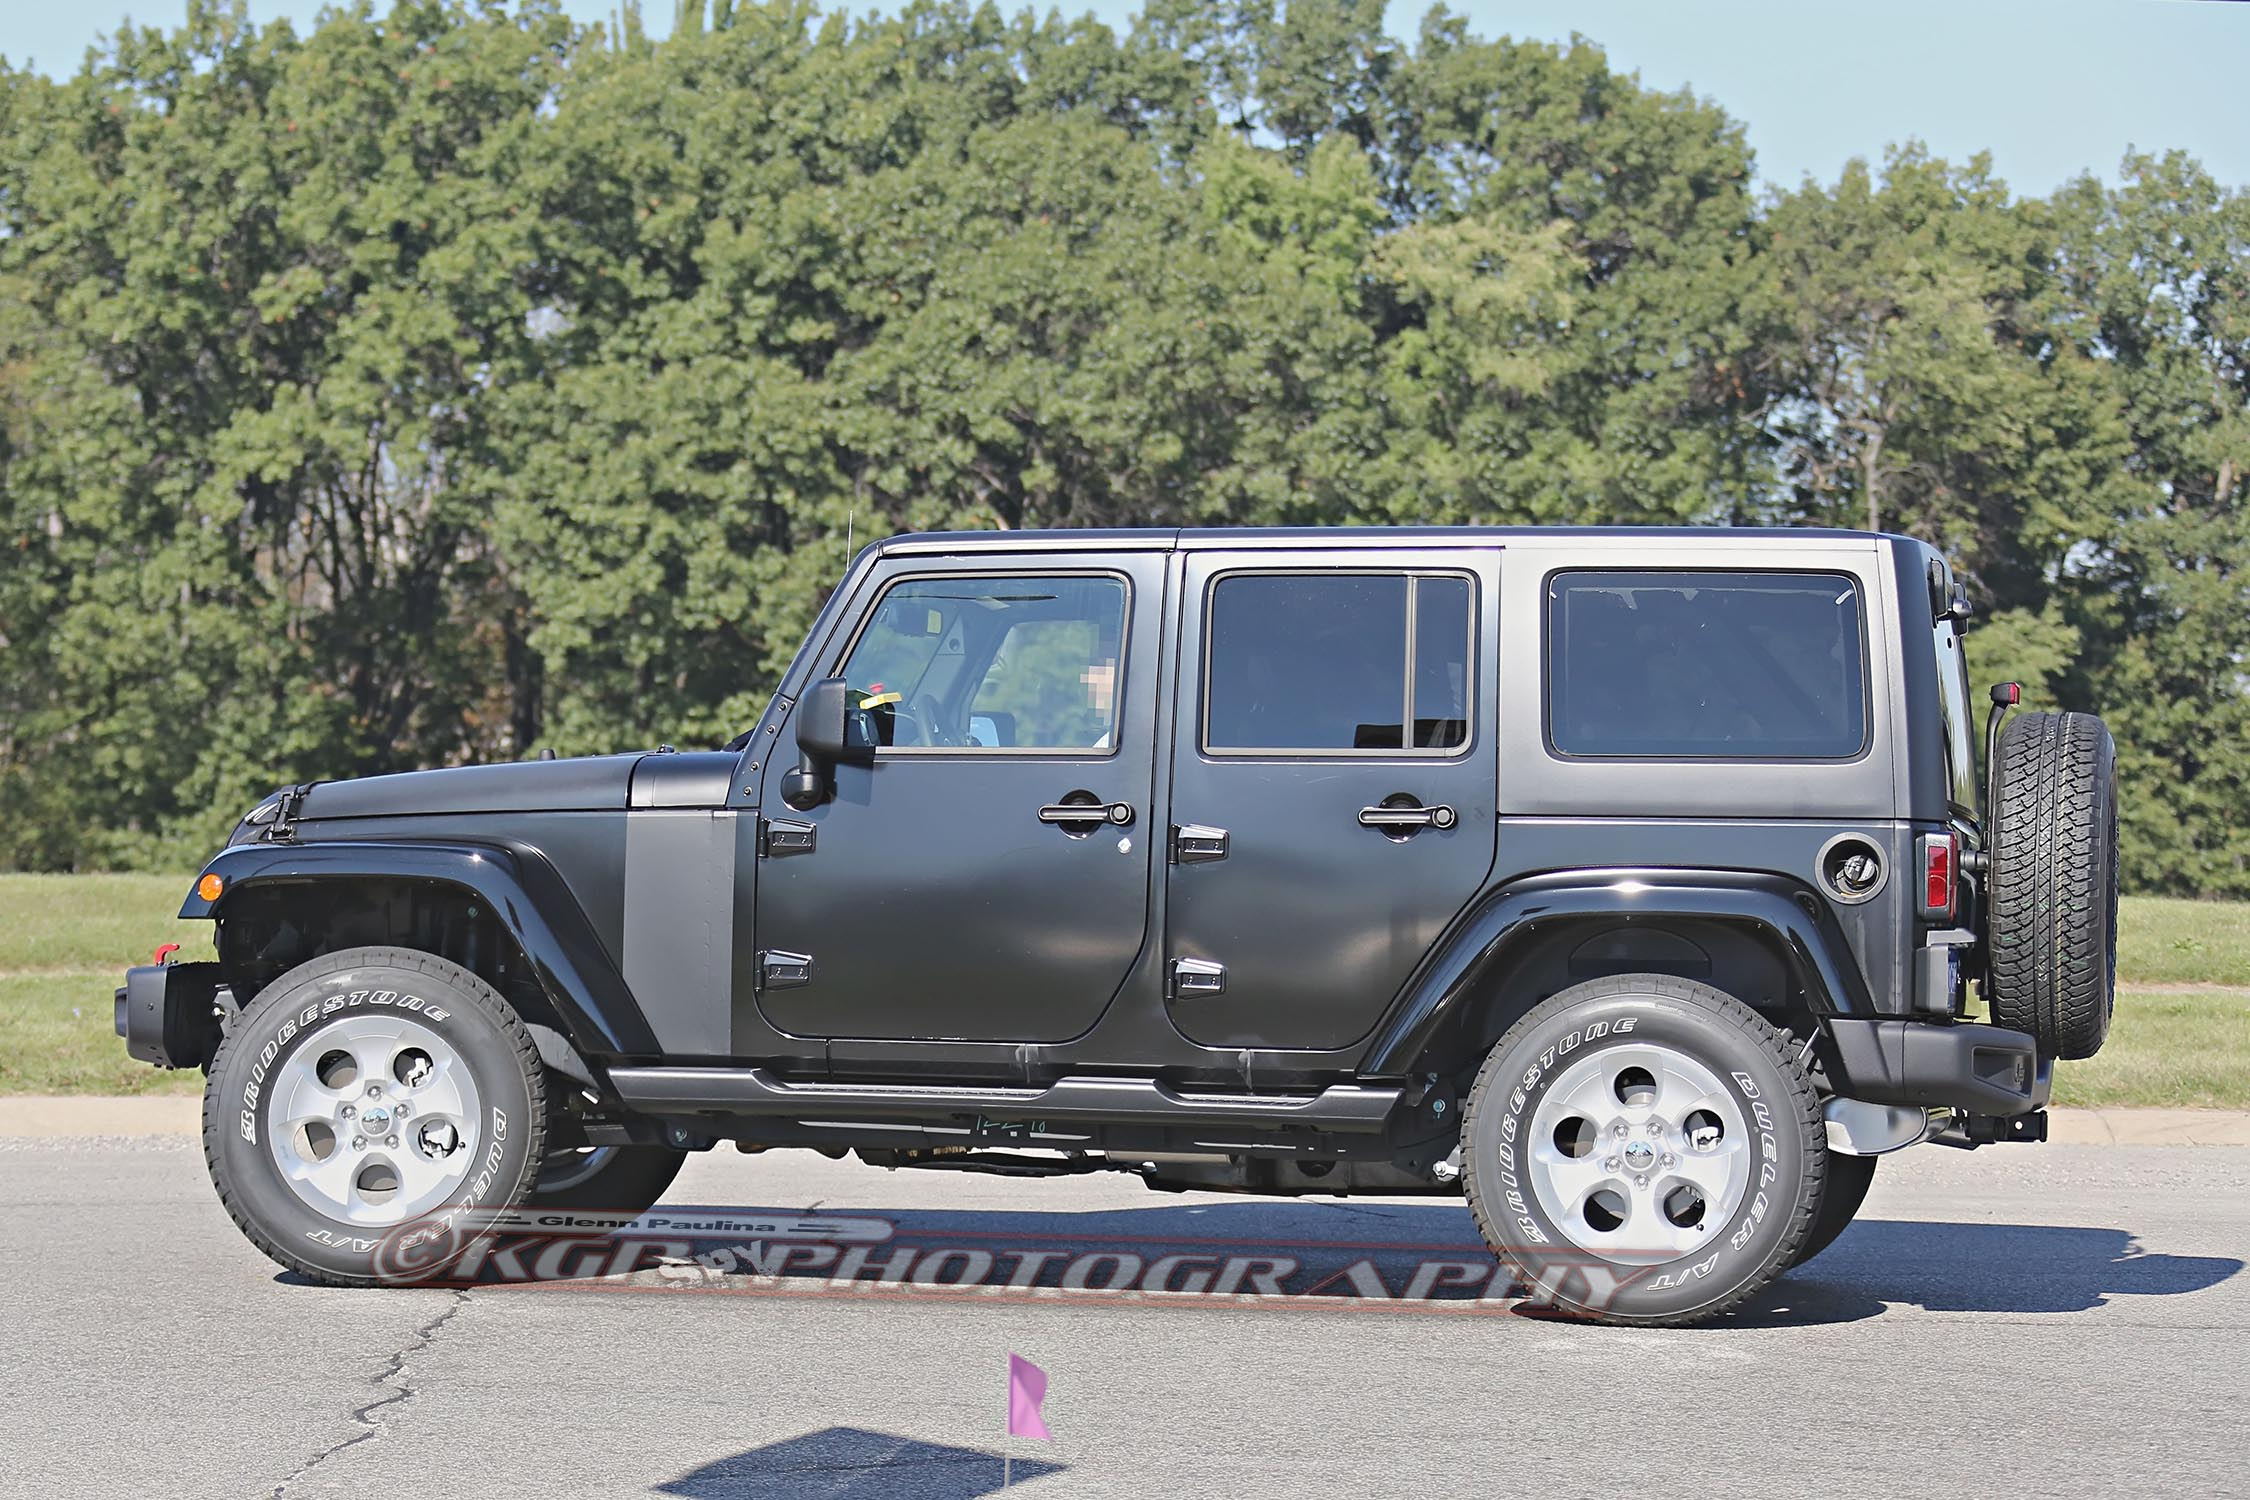 2018 Jeep Wrangler Prototype Spied with Body Suspension Modifications